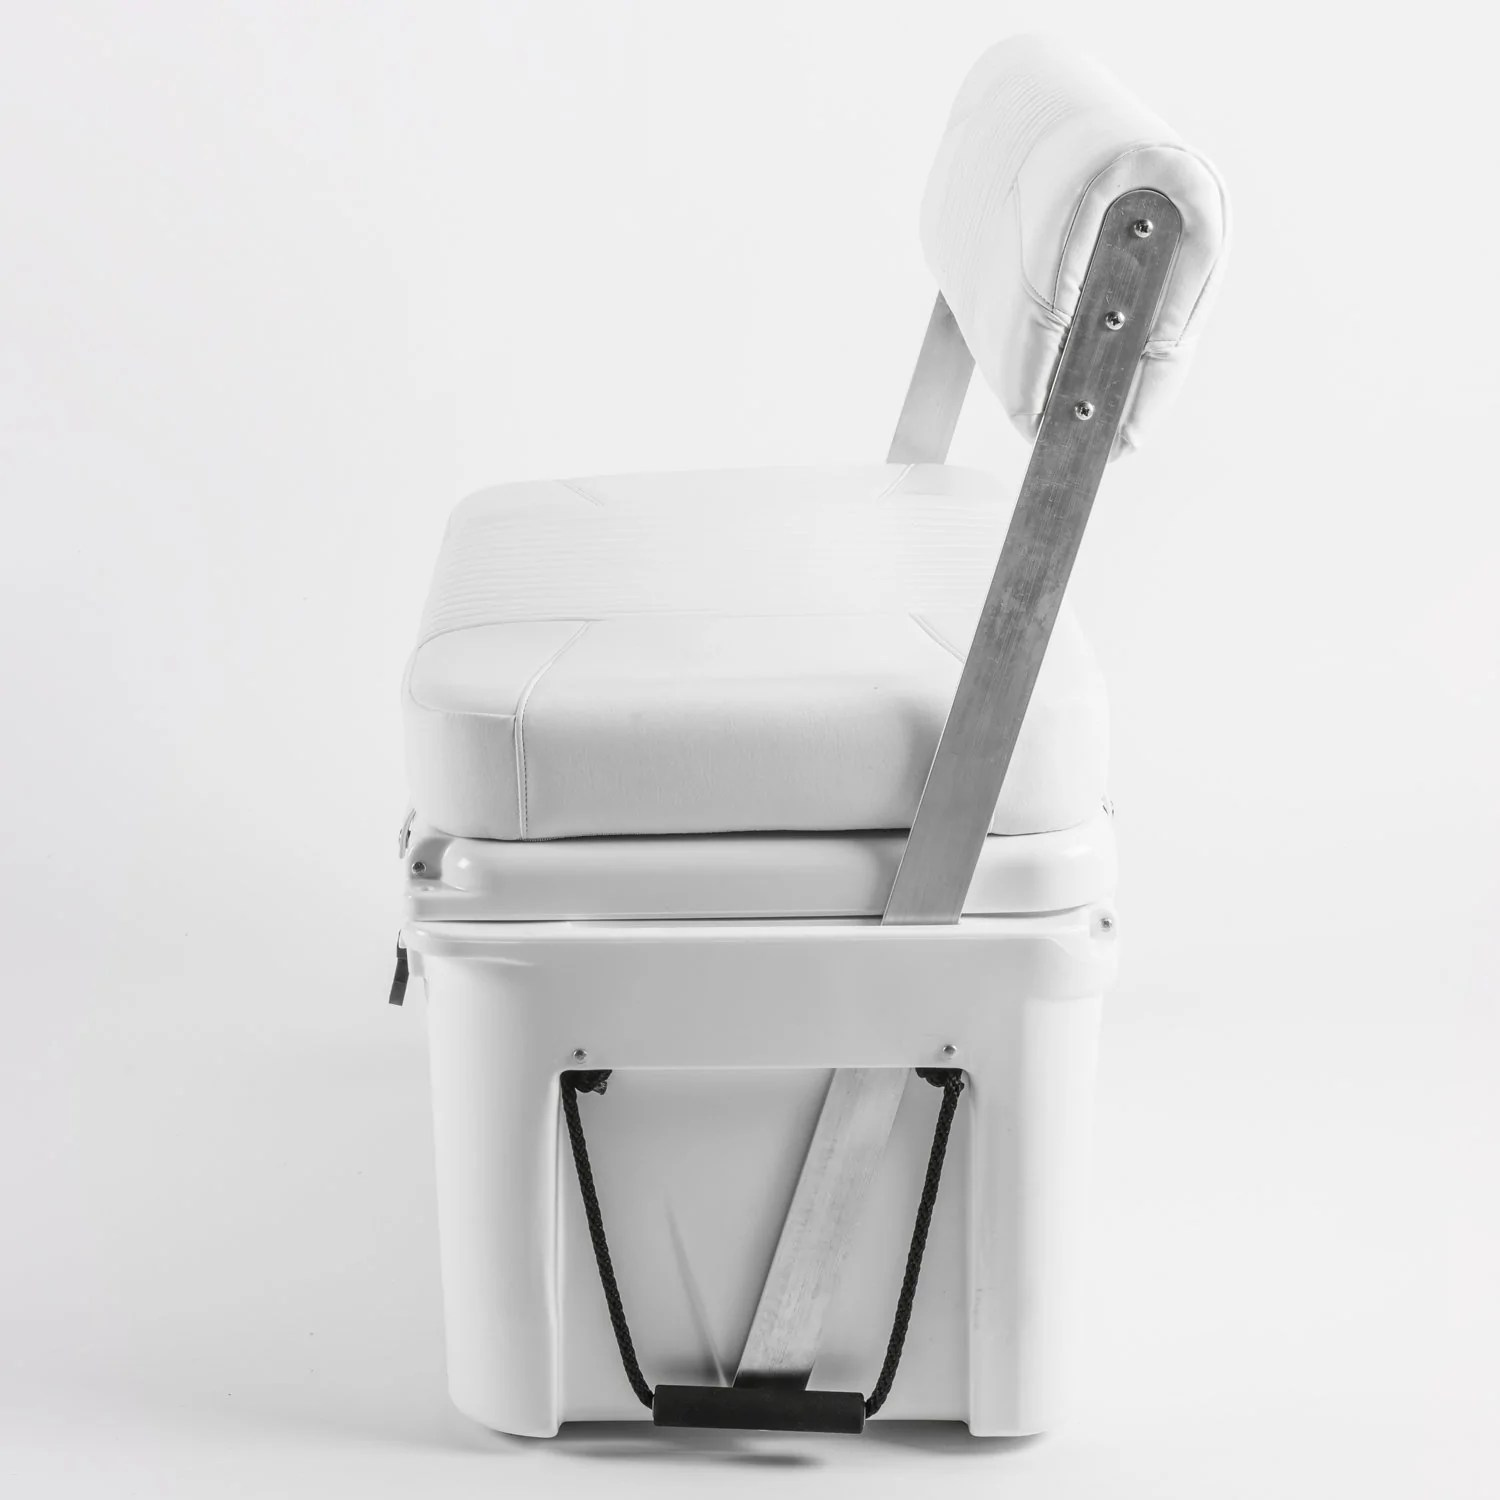 yeti folding chair how to weave a seat wise 3330 ice cage 105 qt swingback cooler seats center console seating w premium